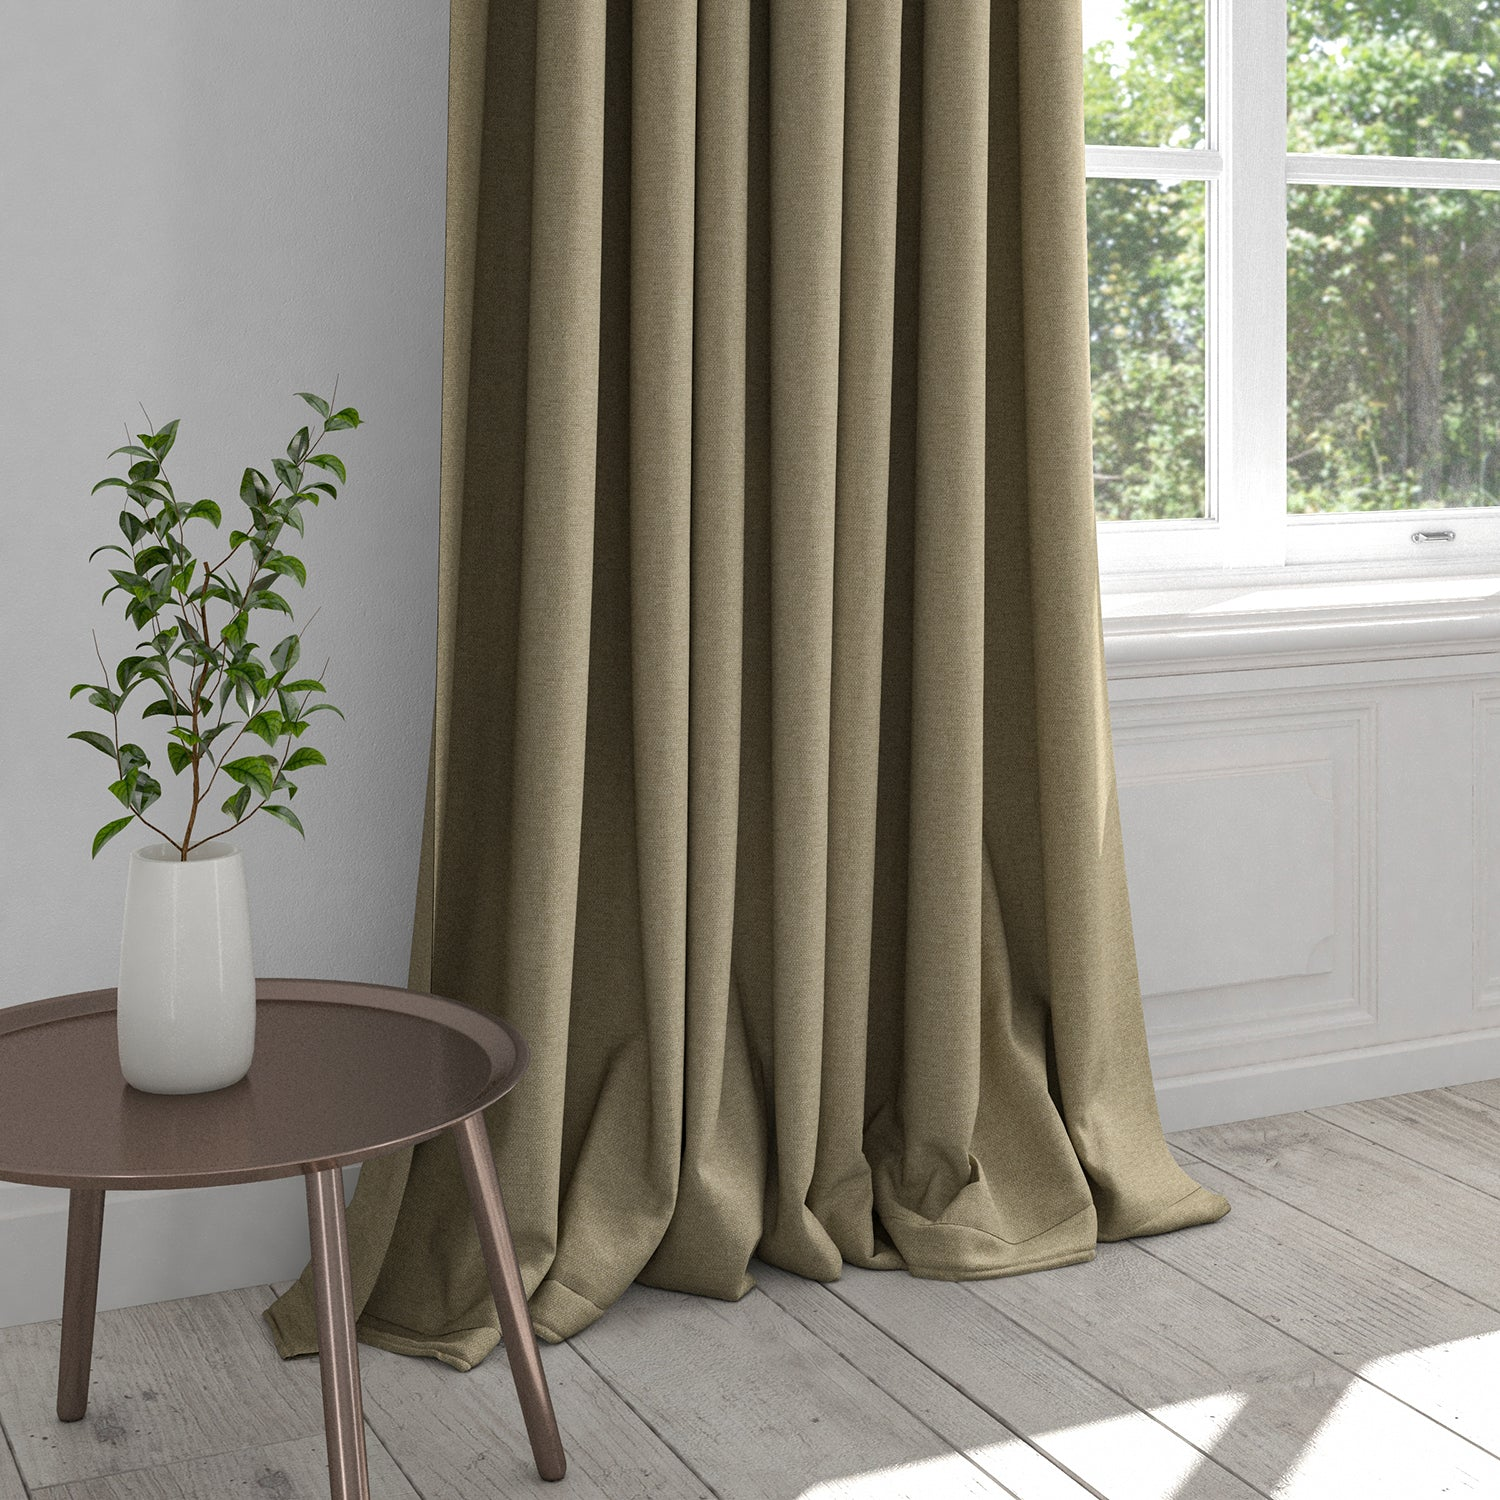 Curtain in a brown plain cotton washable fabric